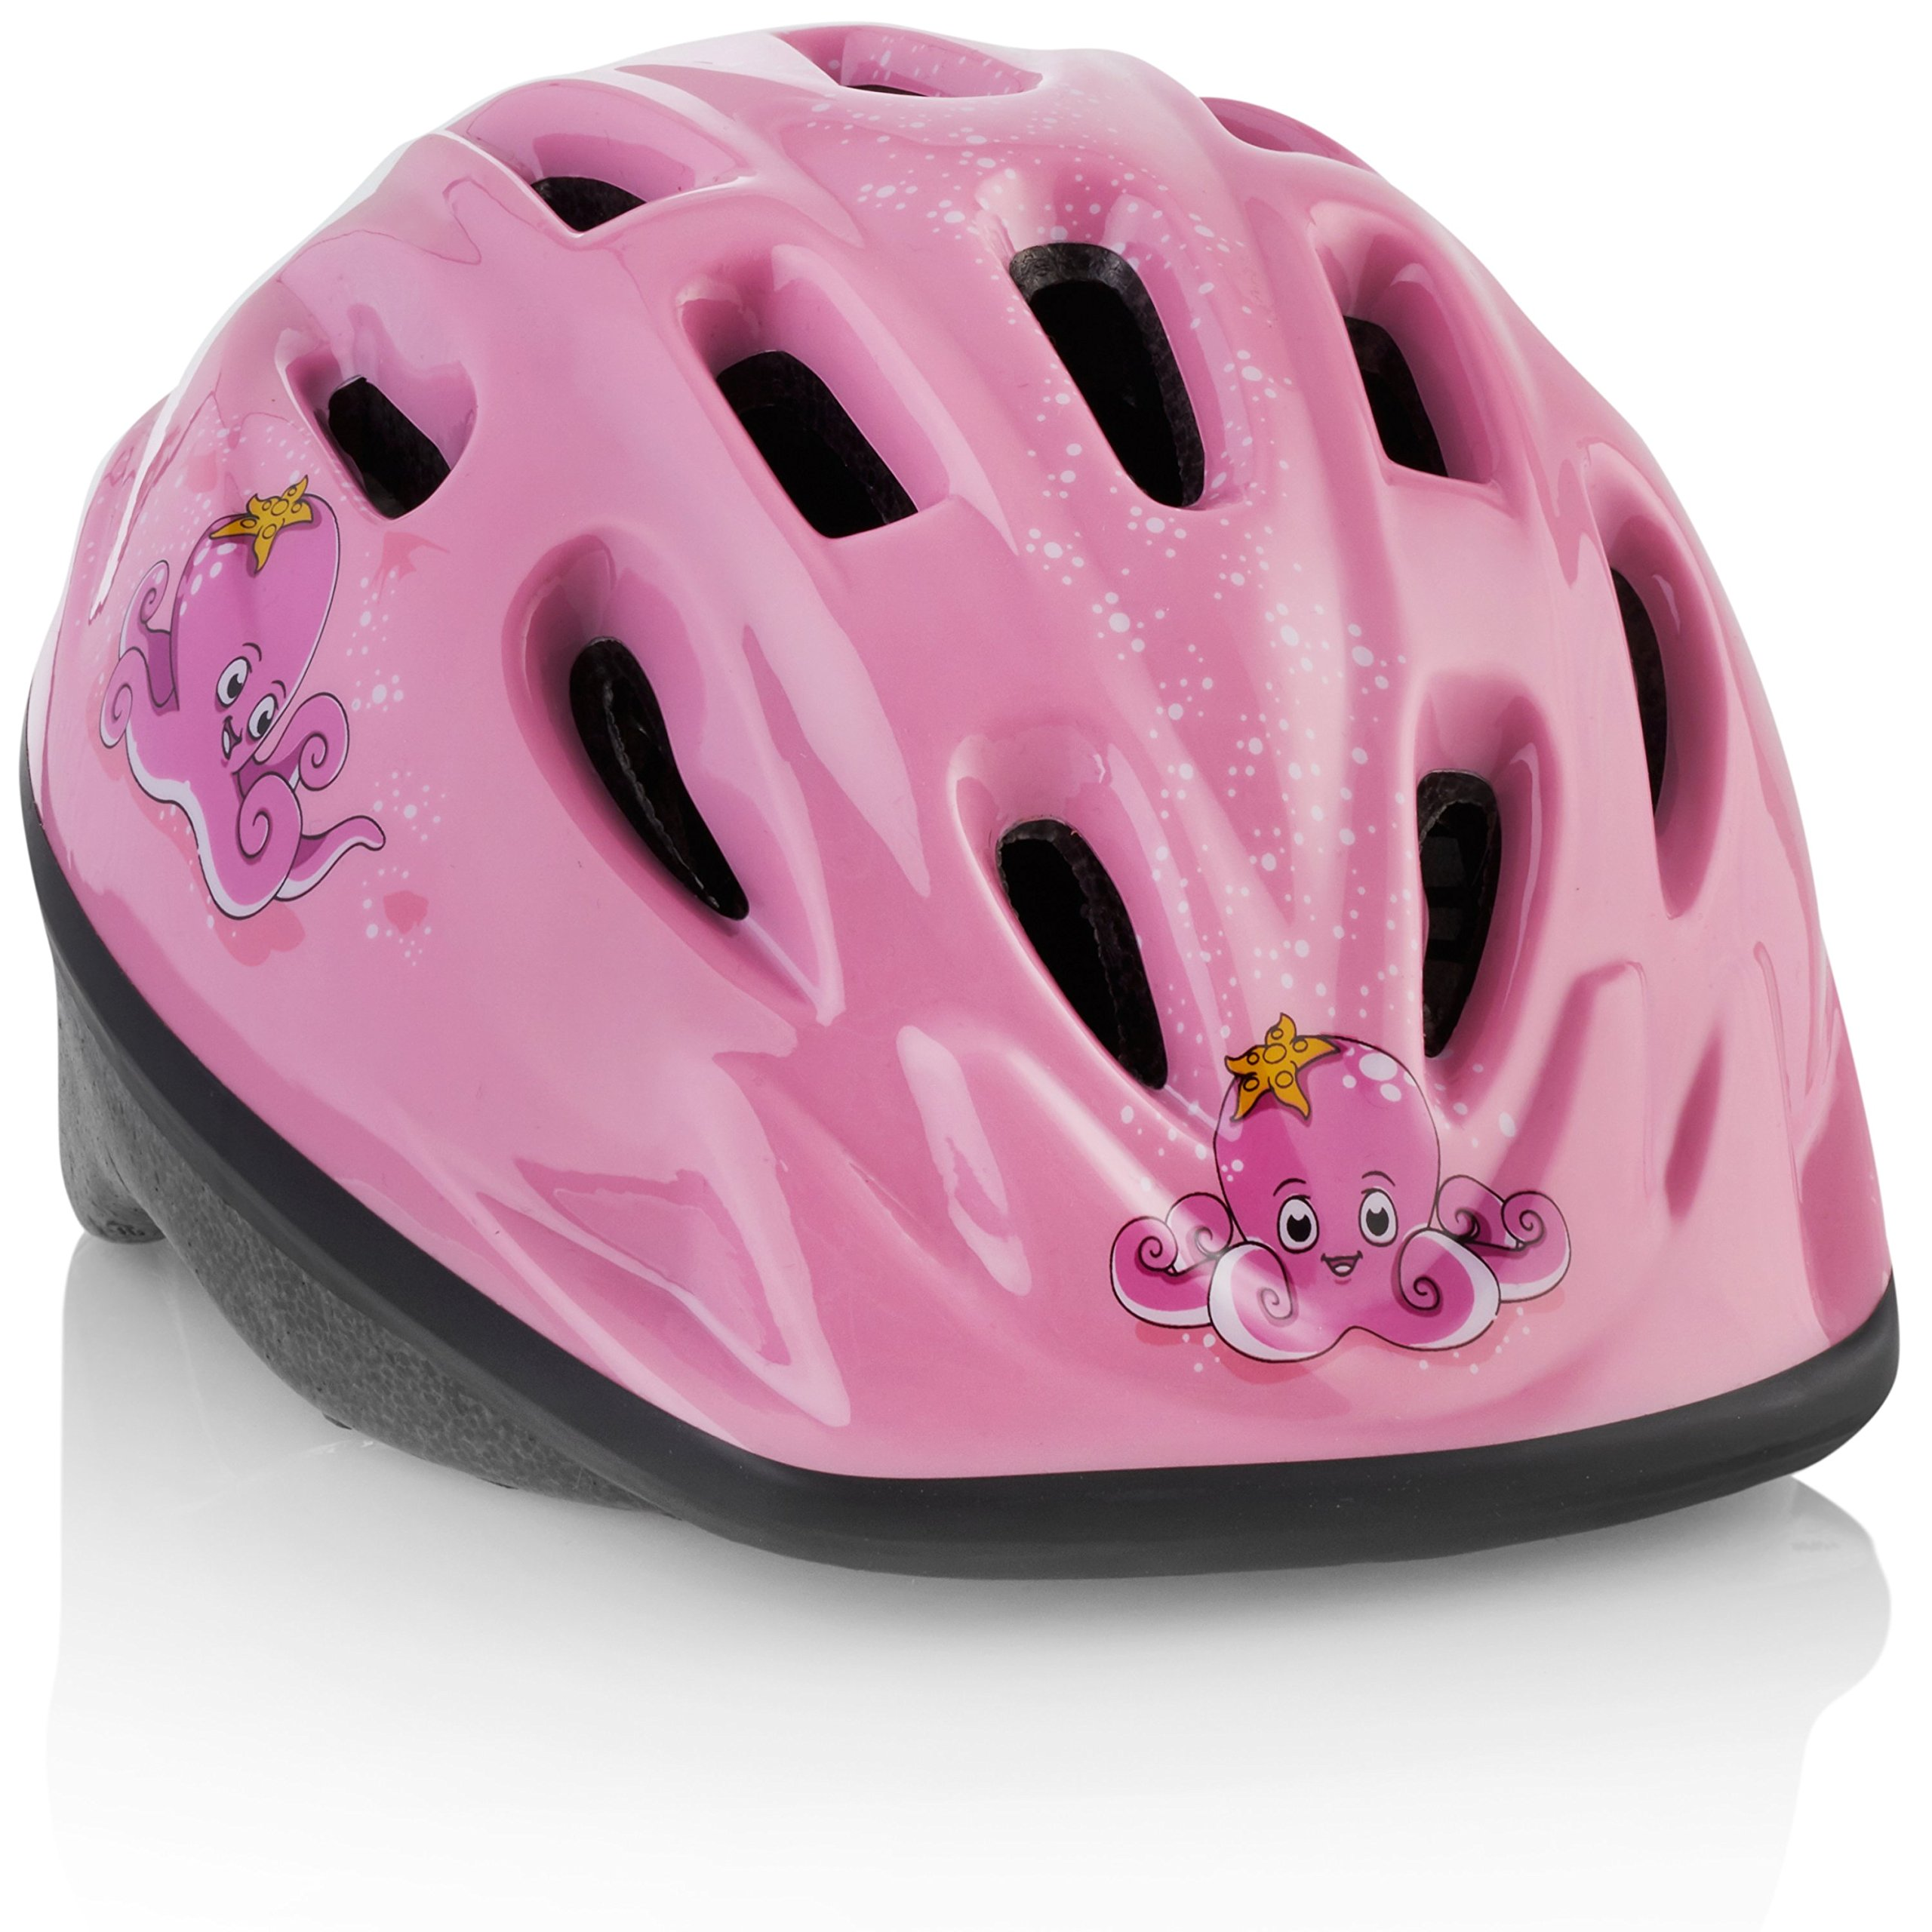 TeamObsidian KIDS Bike Helmet [ Pink Octopus ] – Adjustable from Toddler to Youth Size, Ages 3-7 - Durable Kid Bicycle Helmets with Fun Aquatic Design Girls will LOVE - CSPC Certified - FunWave